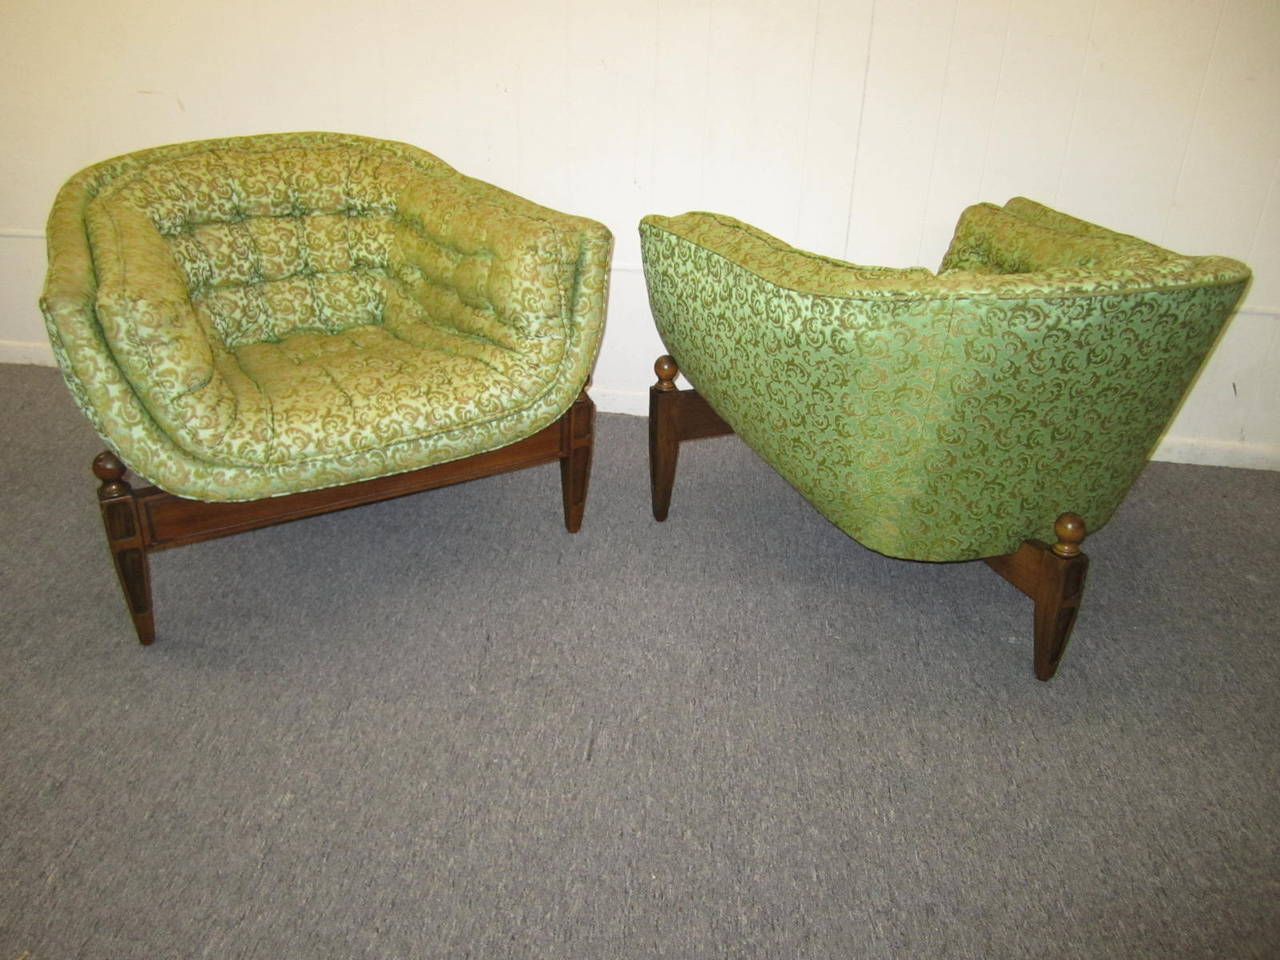 Awesome Lovely Pair Of Mid Century Modern Tufted 3 Legged Lounge Chair Machost Co Dining Chair Design Ideas Machostcouk